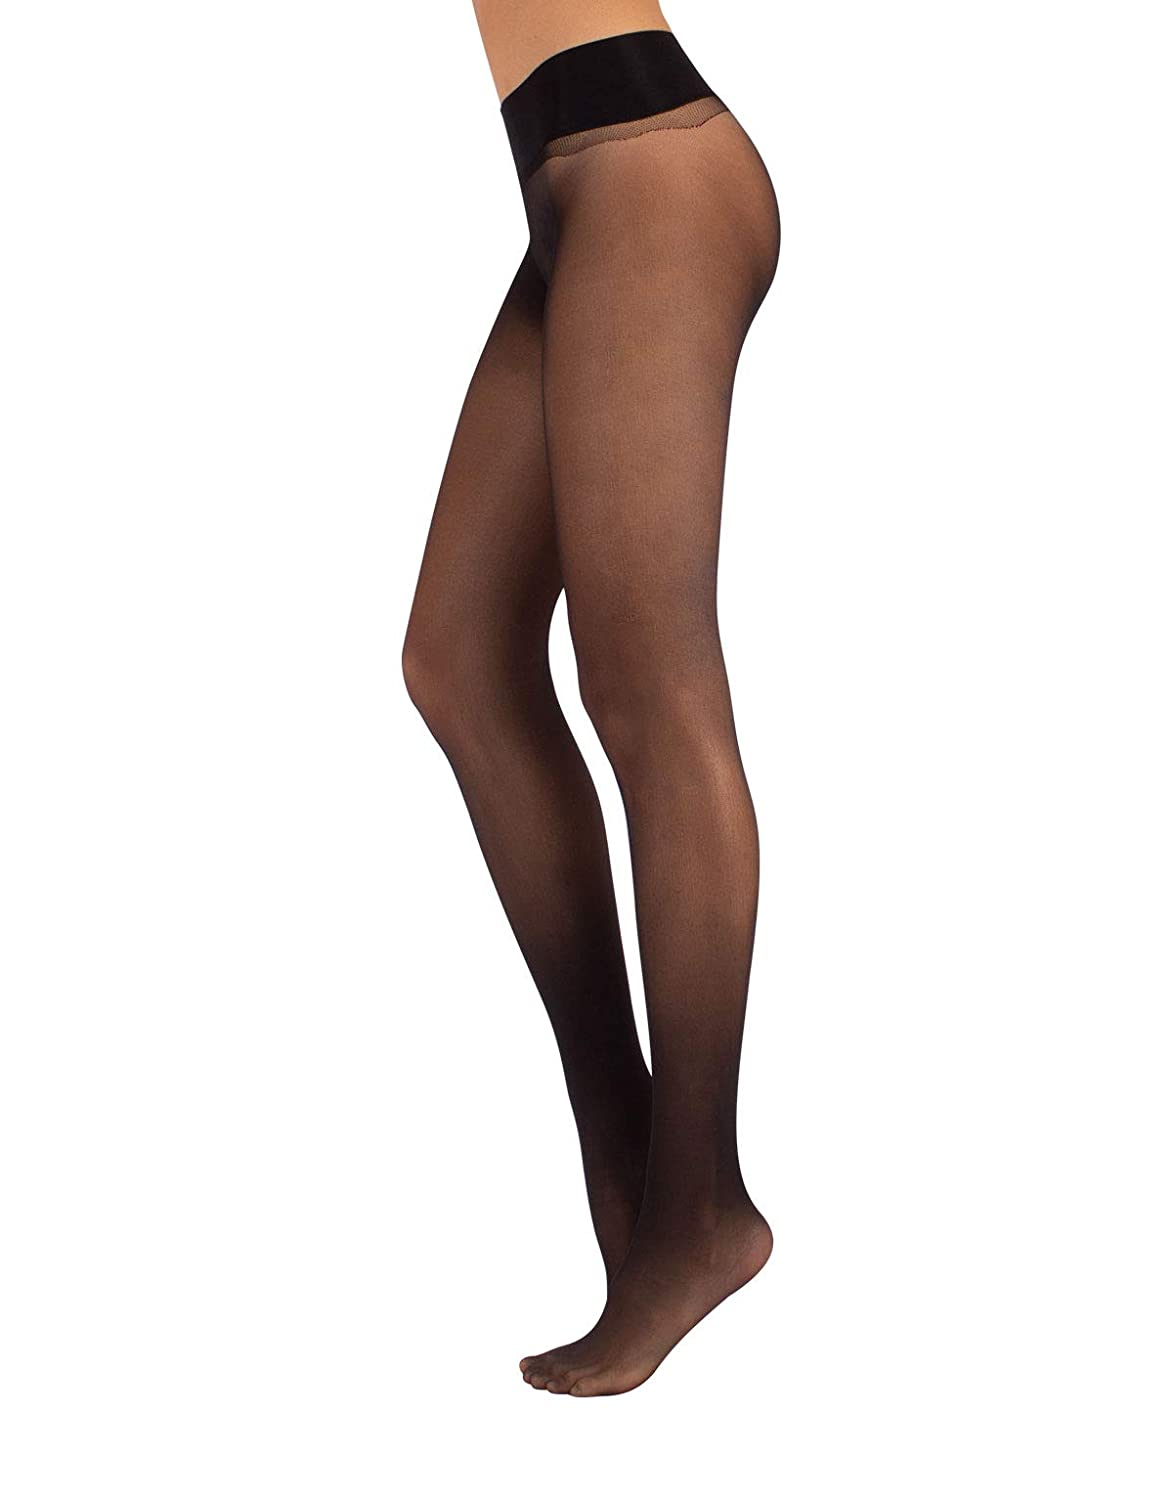 374e51f0a Top 10 wholesale Sheer Tights - Chinabrands.com